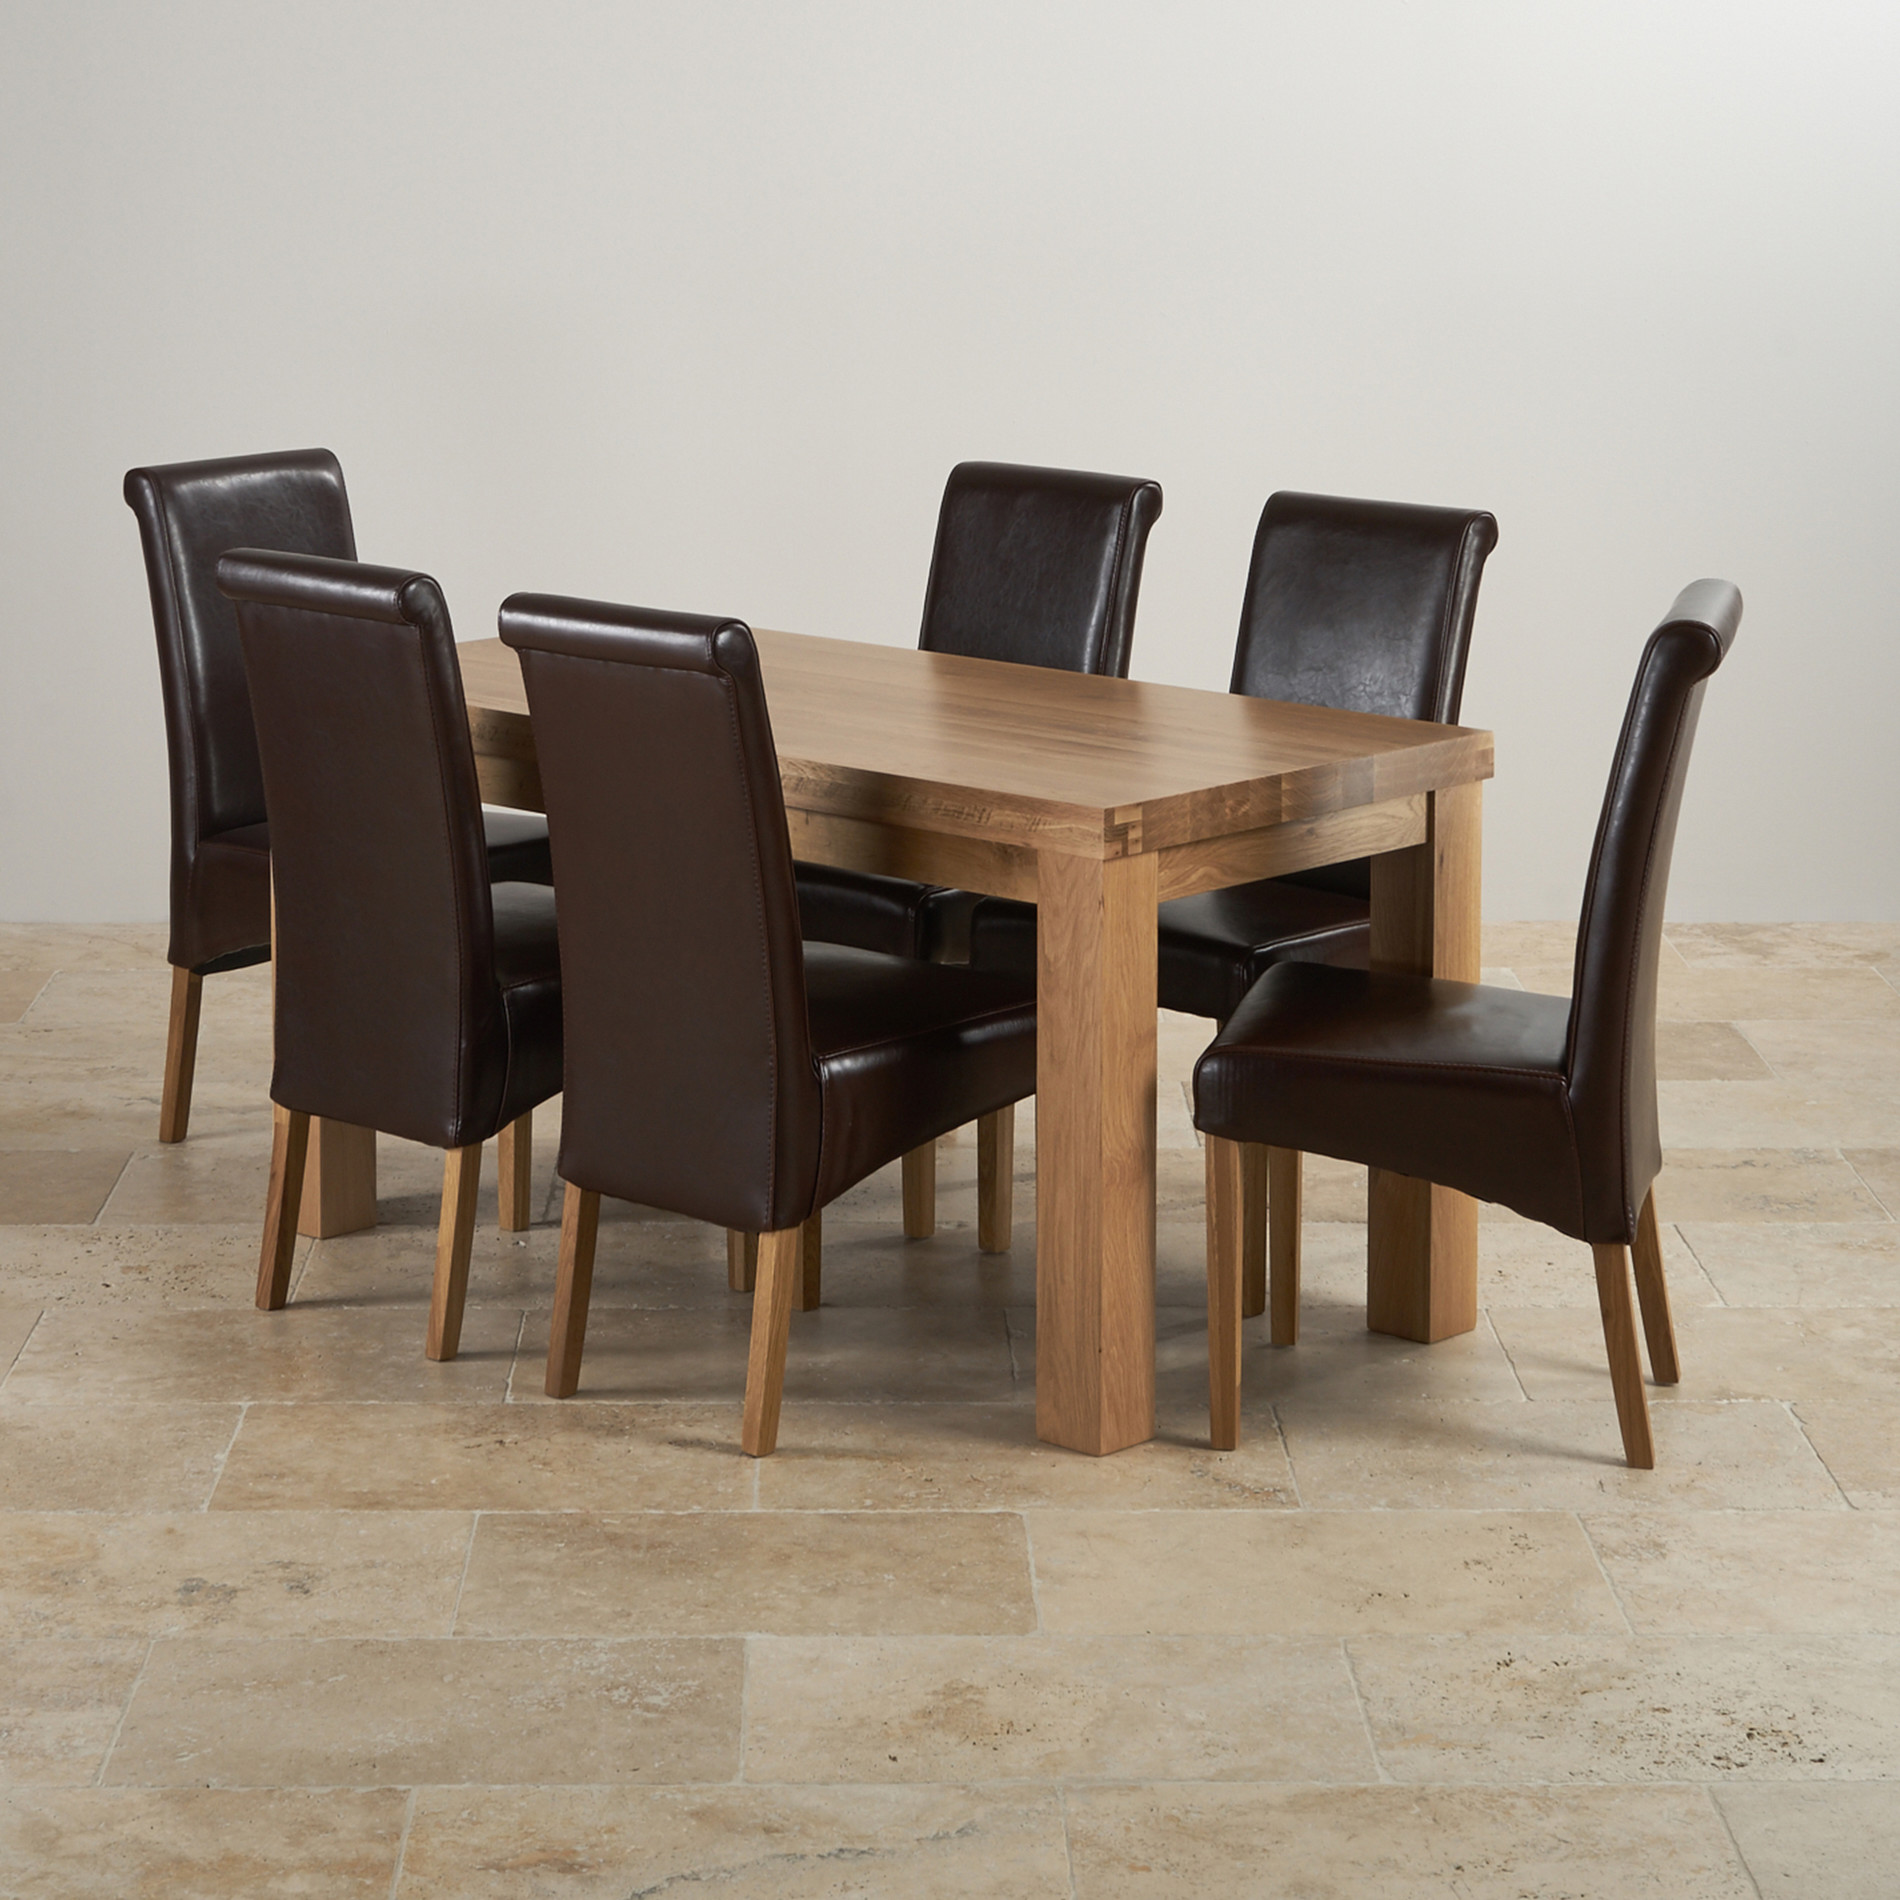 2 Chair Dining Table Contemporary Dining Set In Oak Table 43 6 Brown Leather Chairs